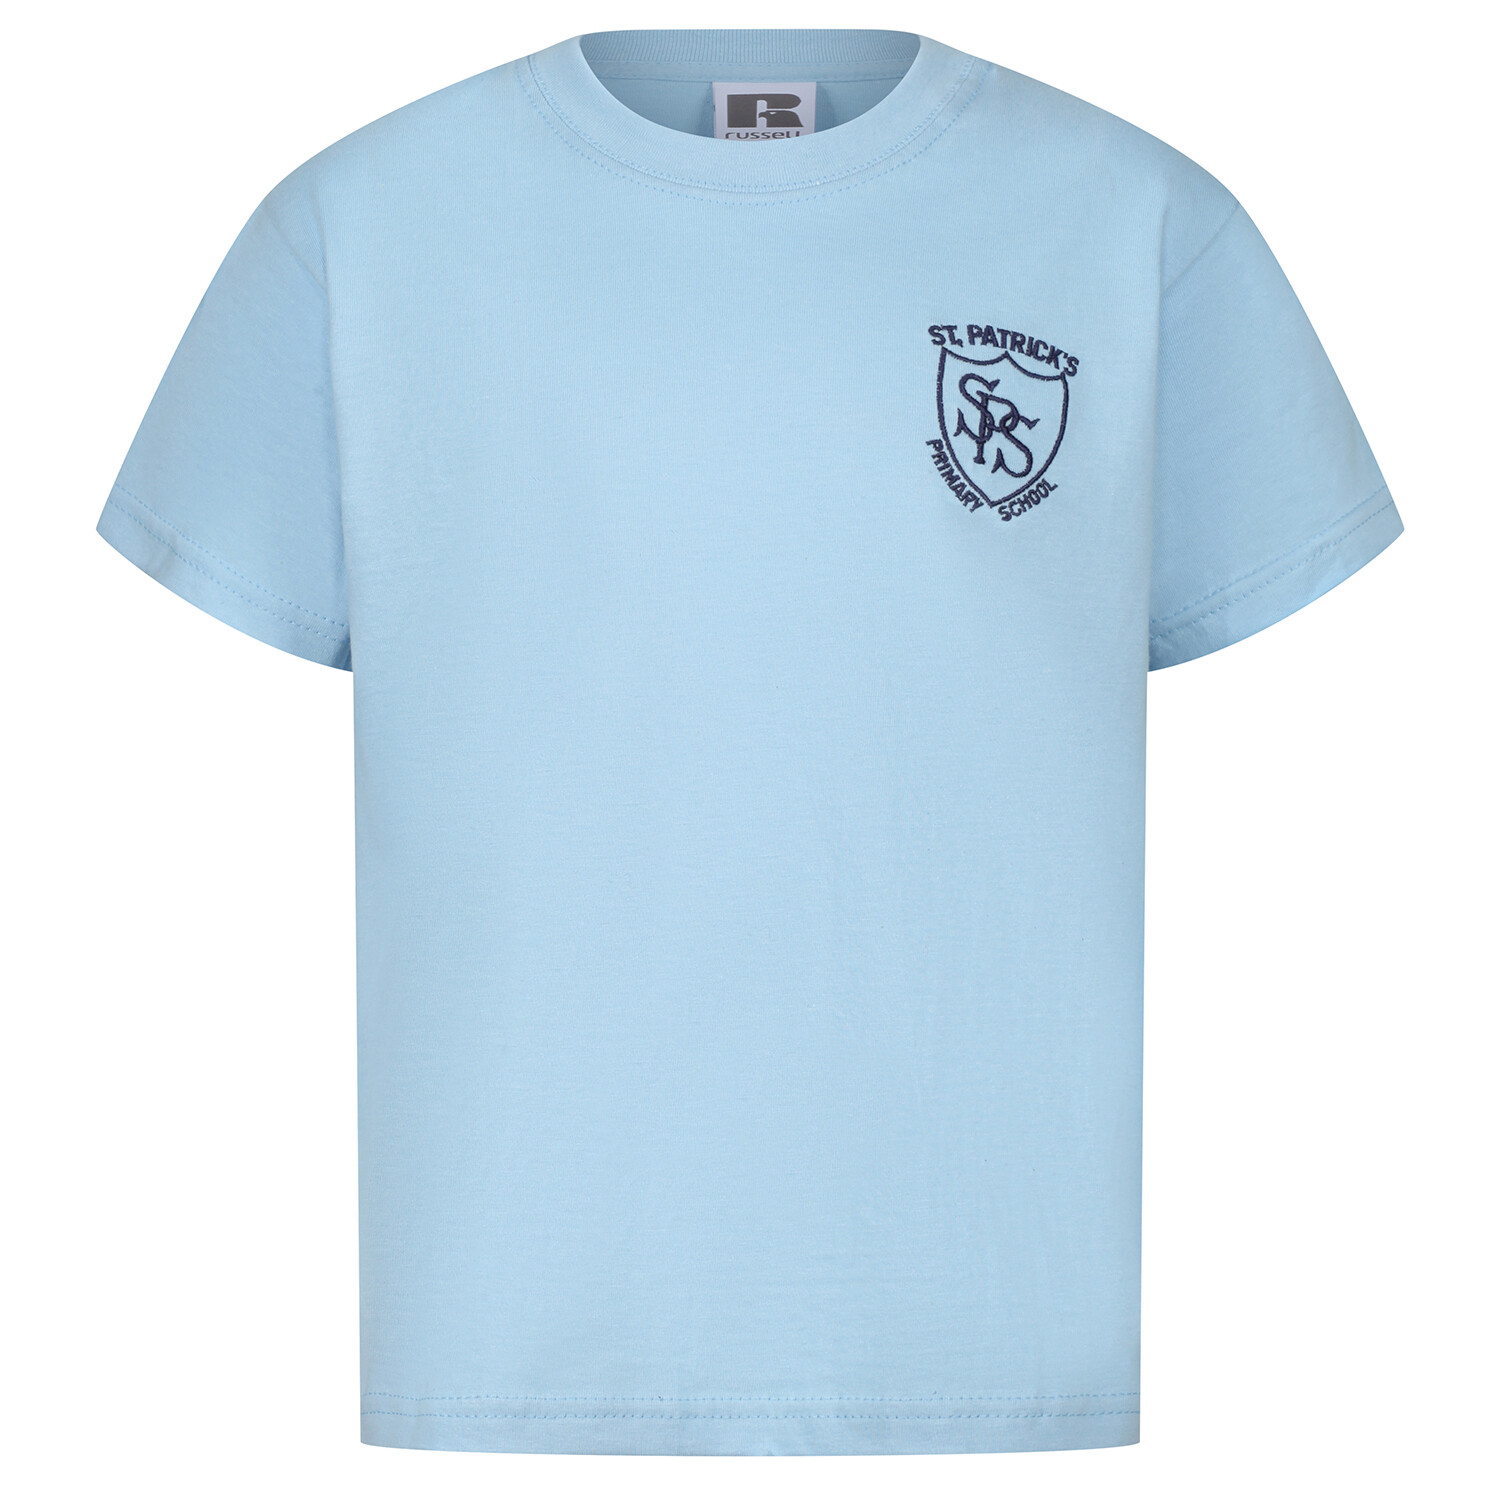 St Patrick's Primary PE T-Shirt